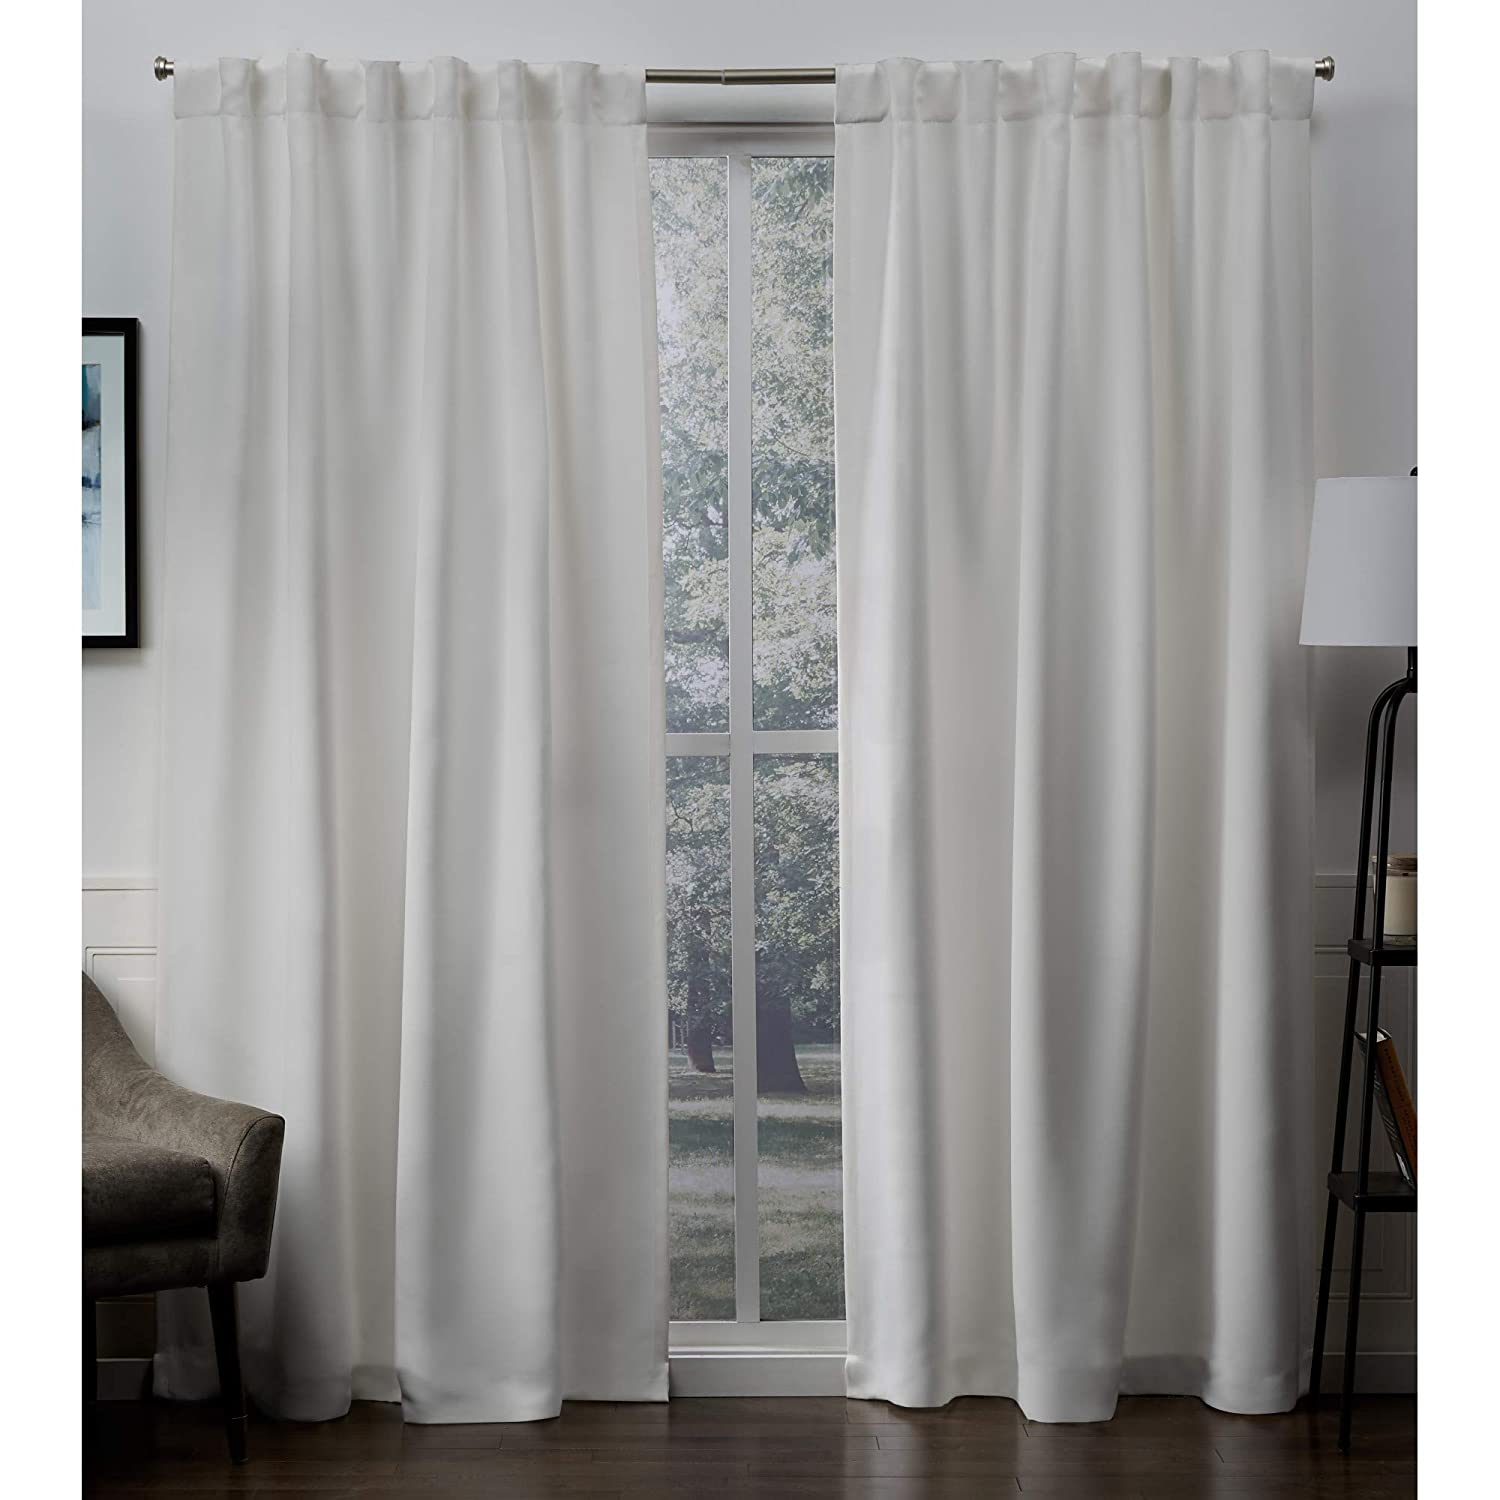 Vanilla 52x96 Exclusive Home Sateen Blackout Hidden Tab Curtain Panel Pair, Silver, 52x63, 2 Piece